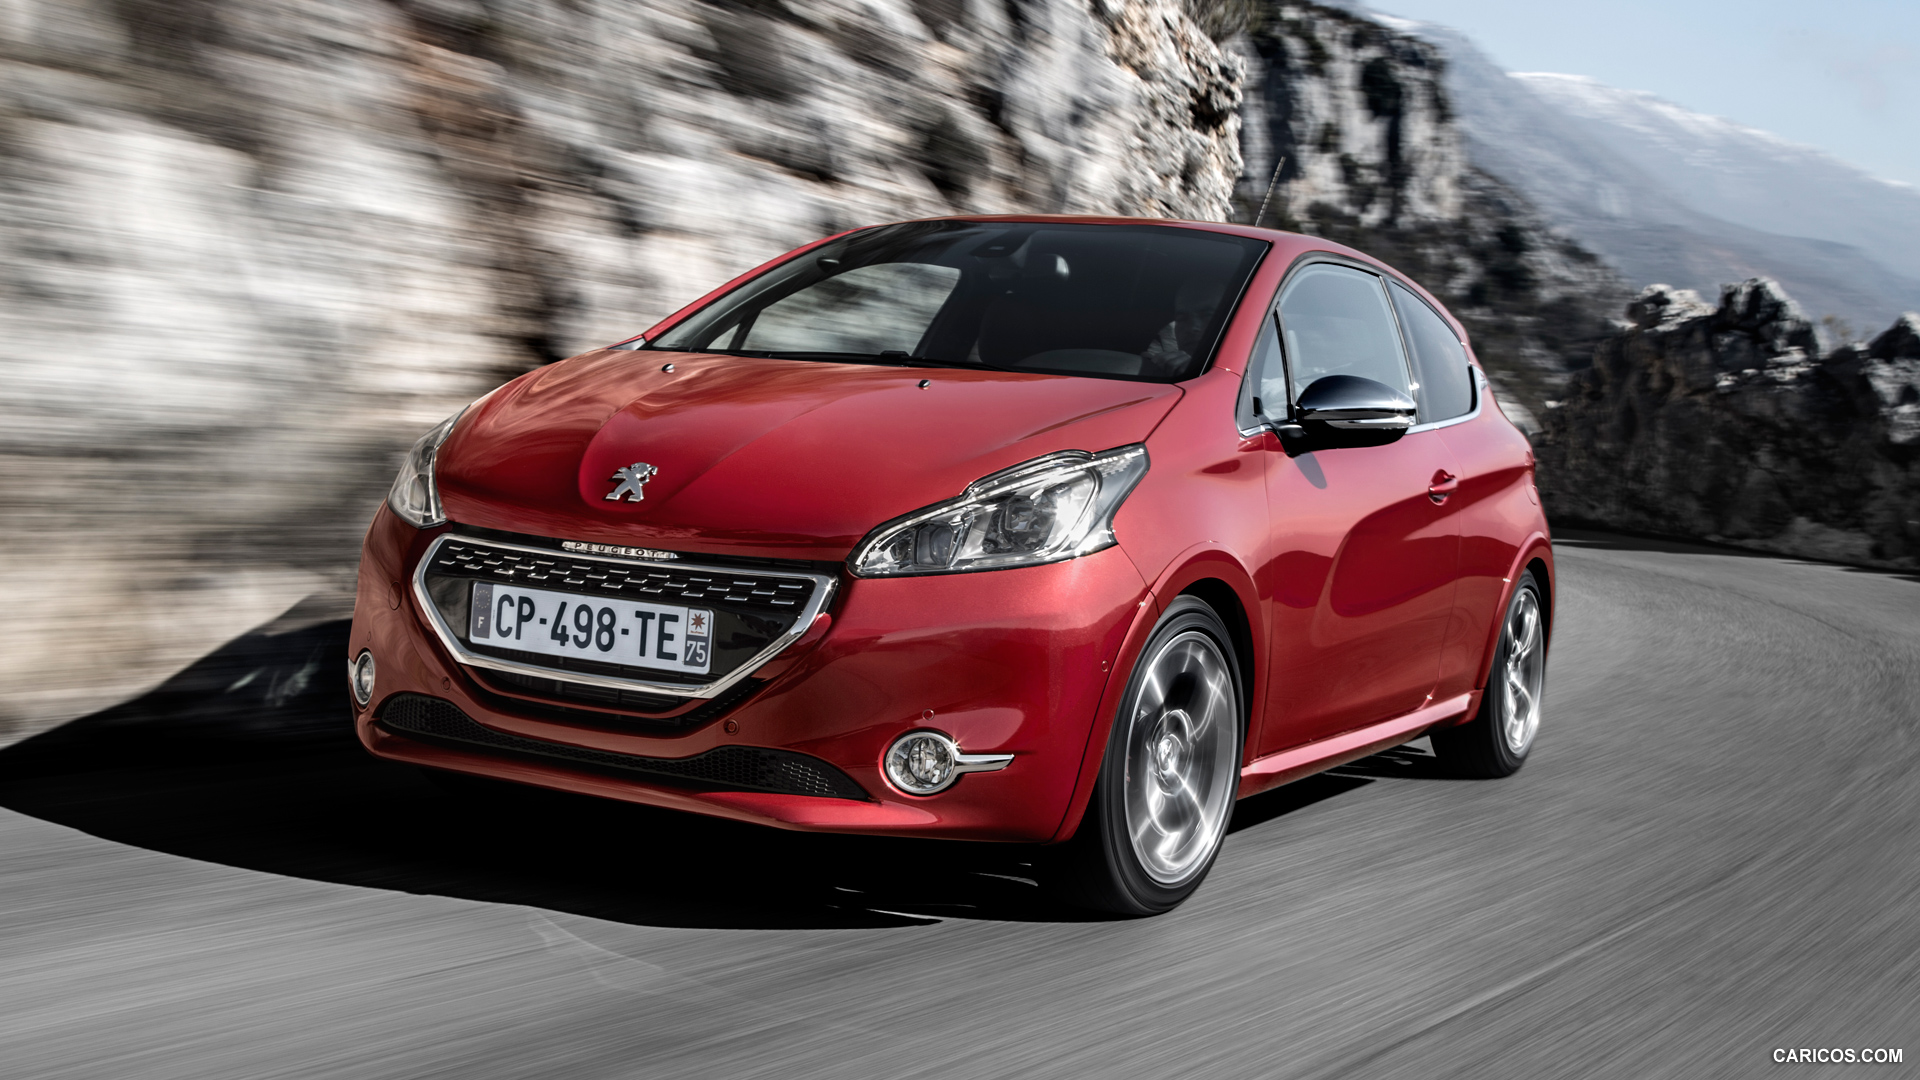 peugeot 208 gti photos photo gallery page 2. Black Bedroom Furniture Sets. Home Design Ideas